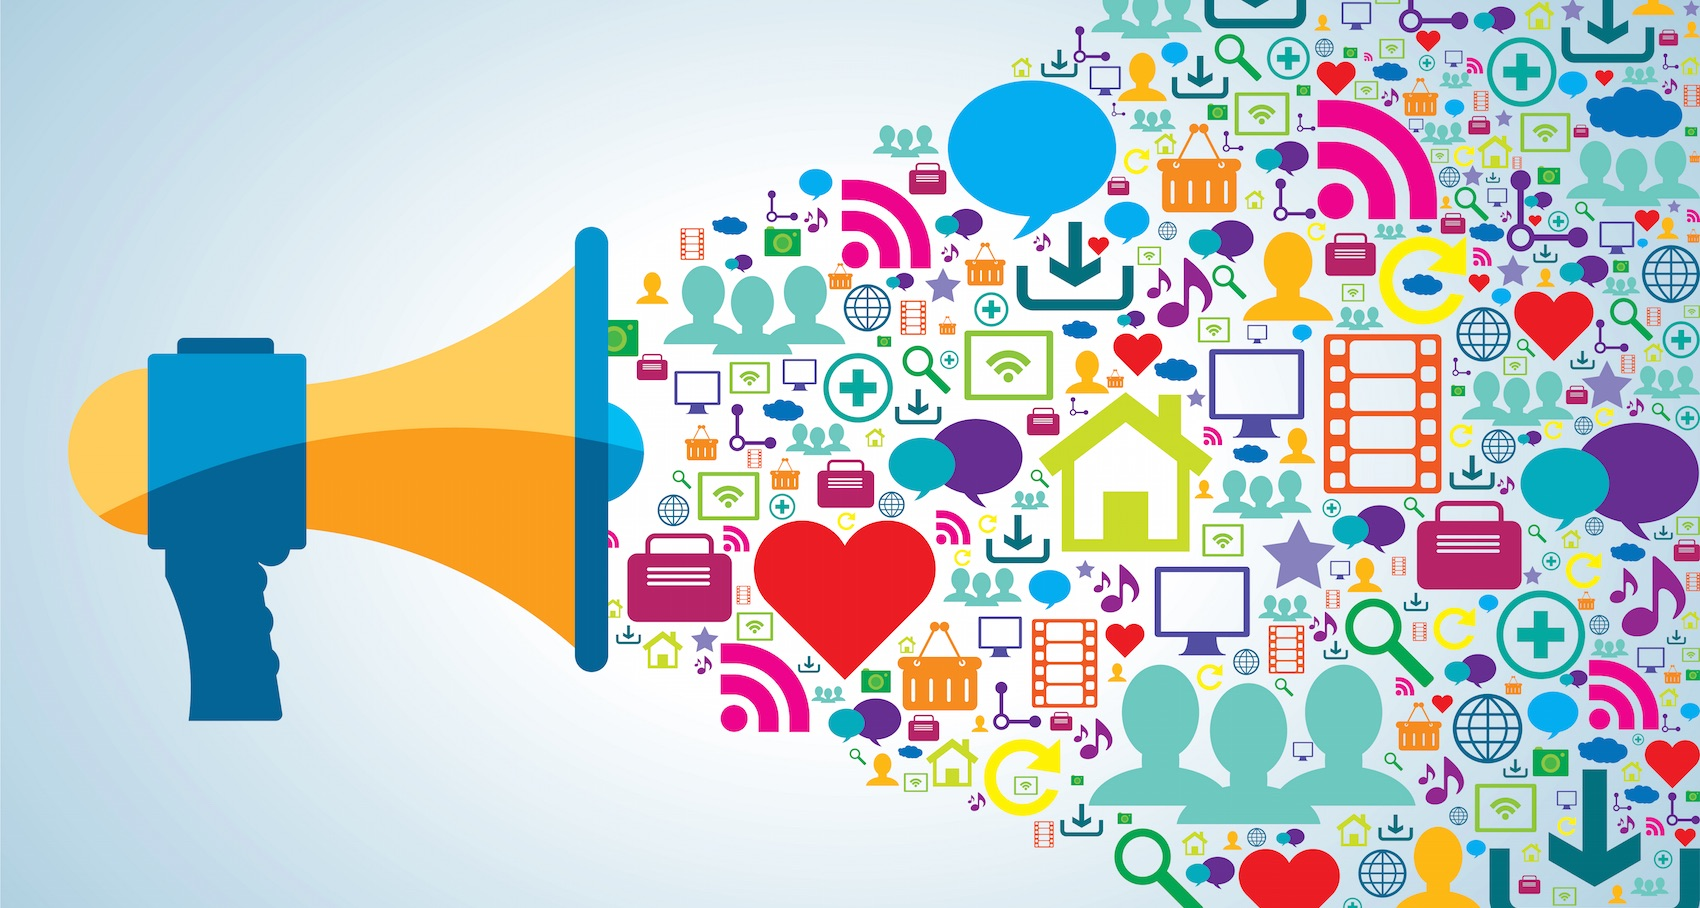 How To Add Personality to Your Social Media